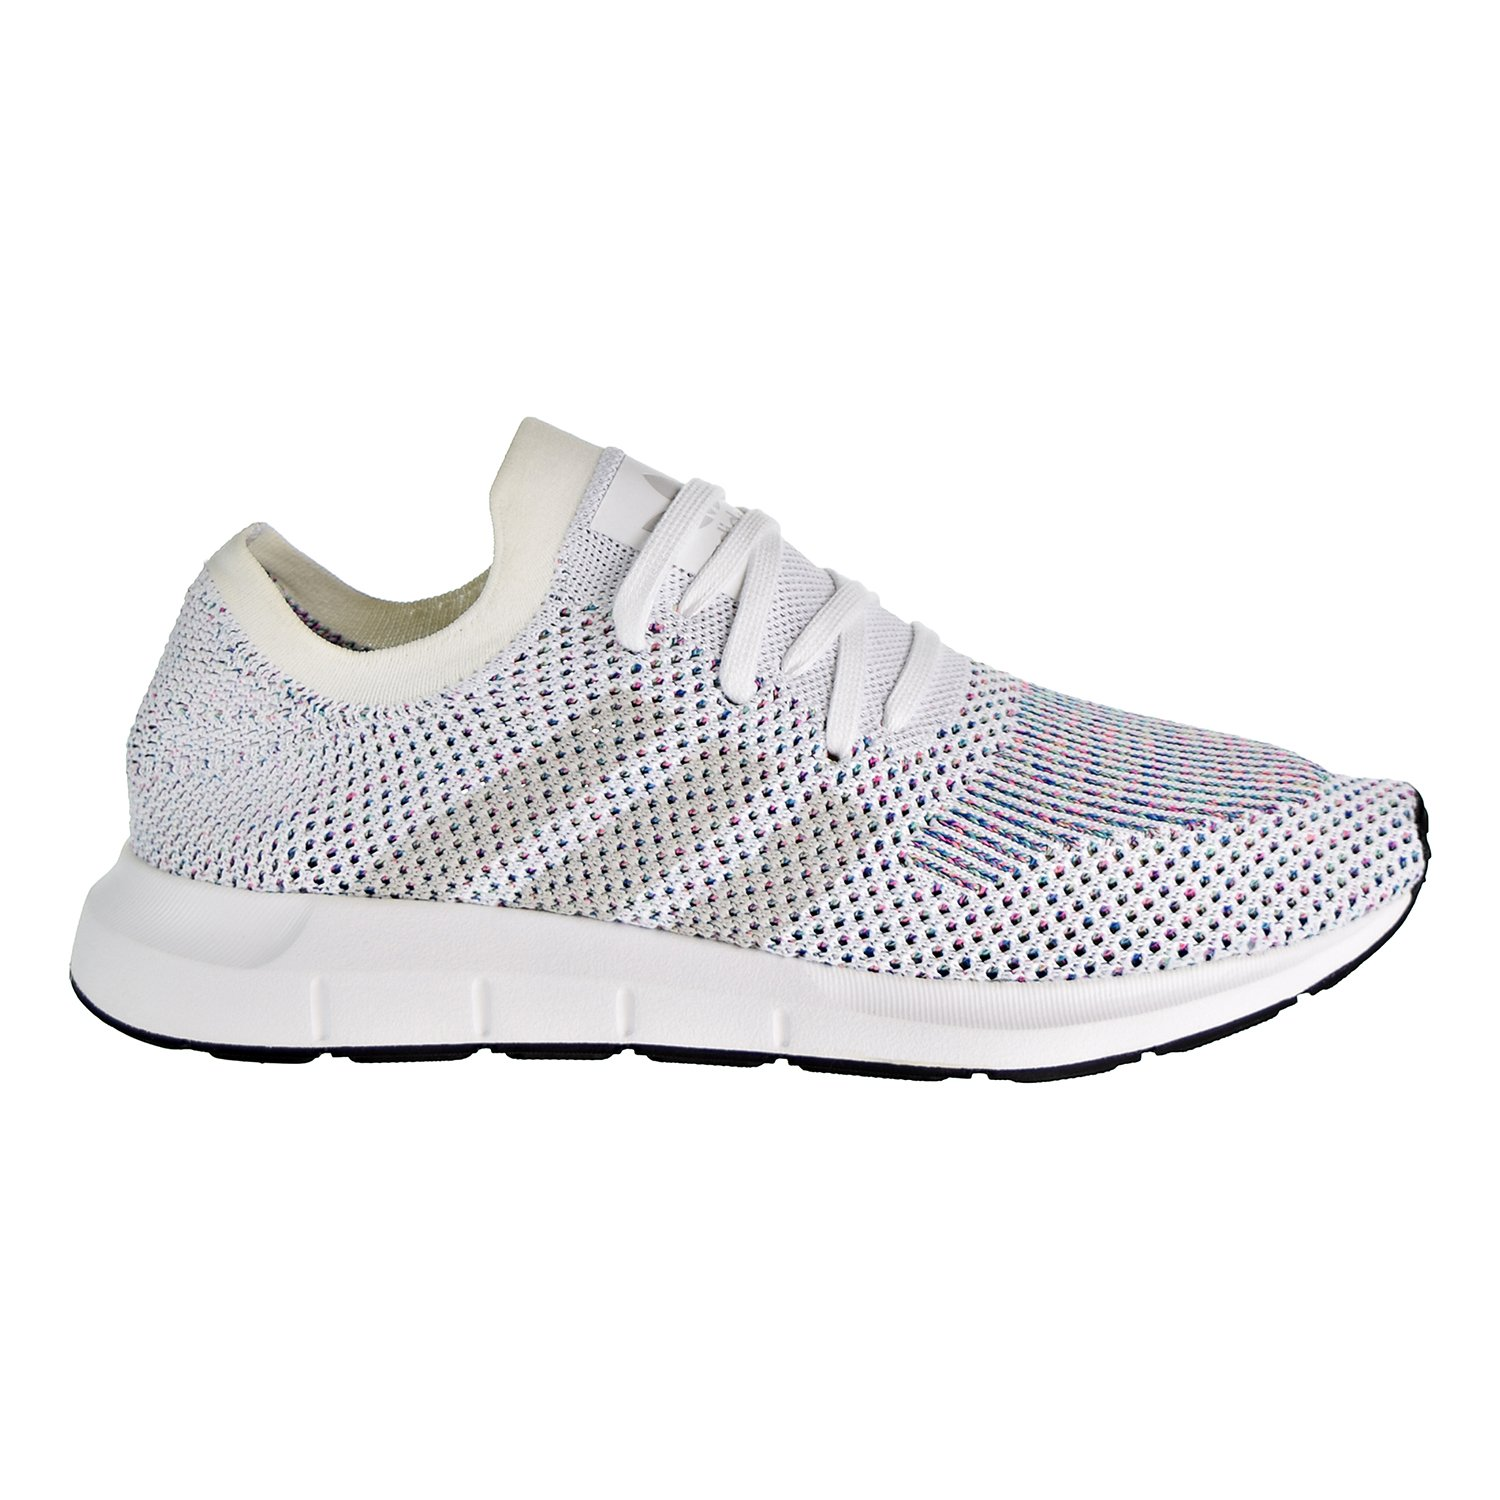 794413cc65da Galleon - Adidas Originals Swift Run Prime Knit Men s Shoes White Black  Cg4126 (10.5 D(M) US)